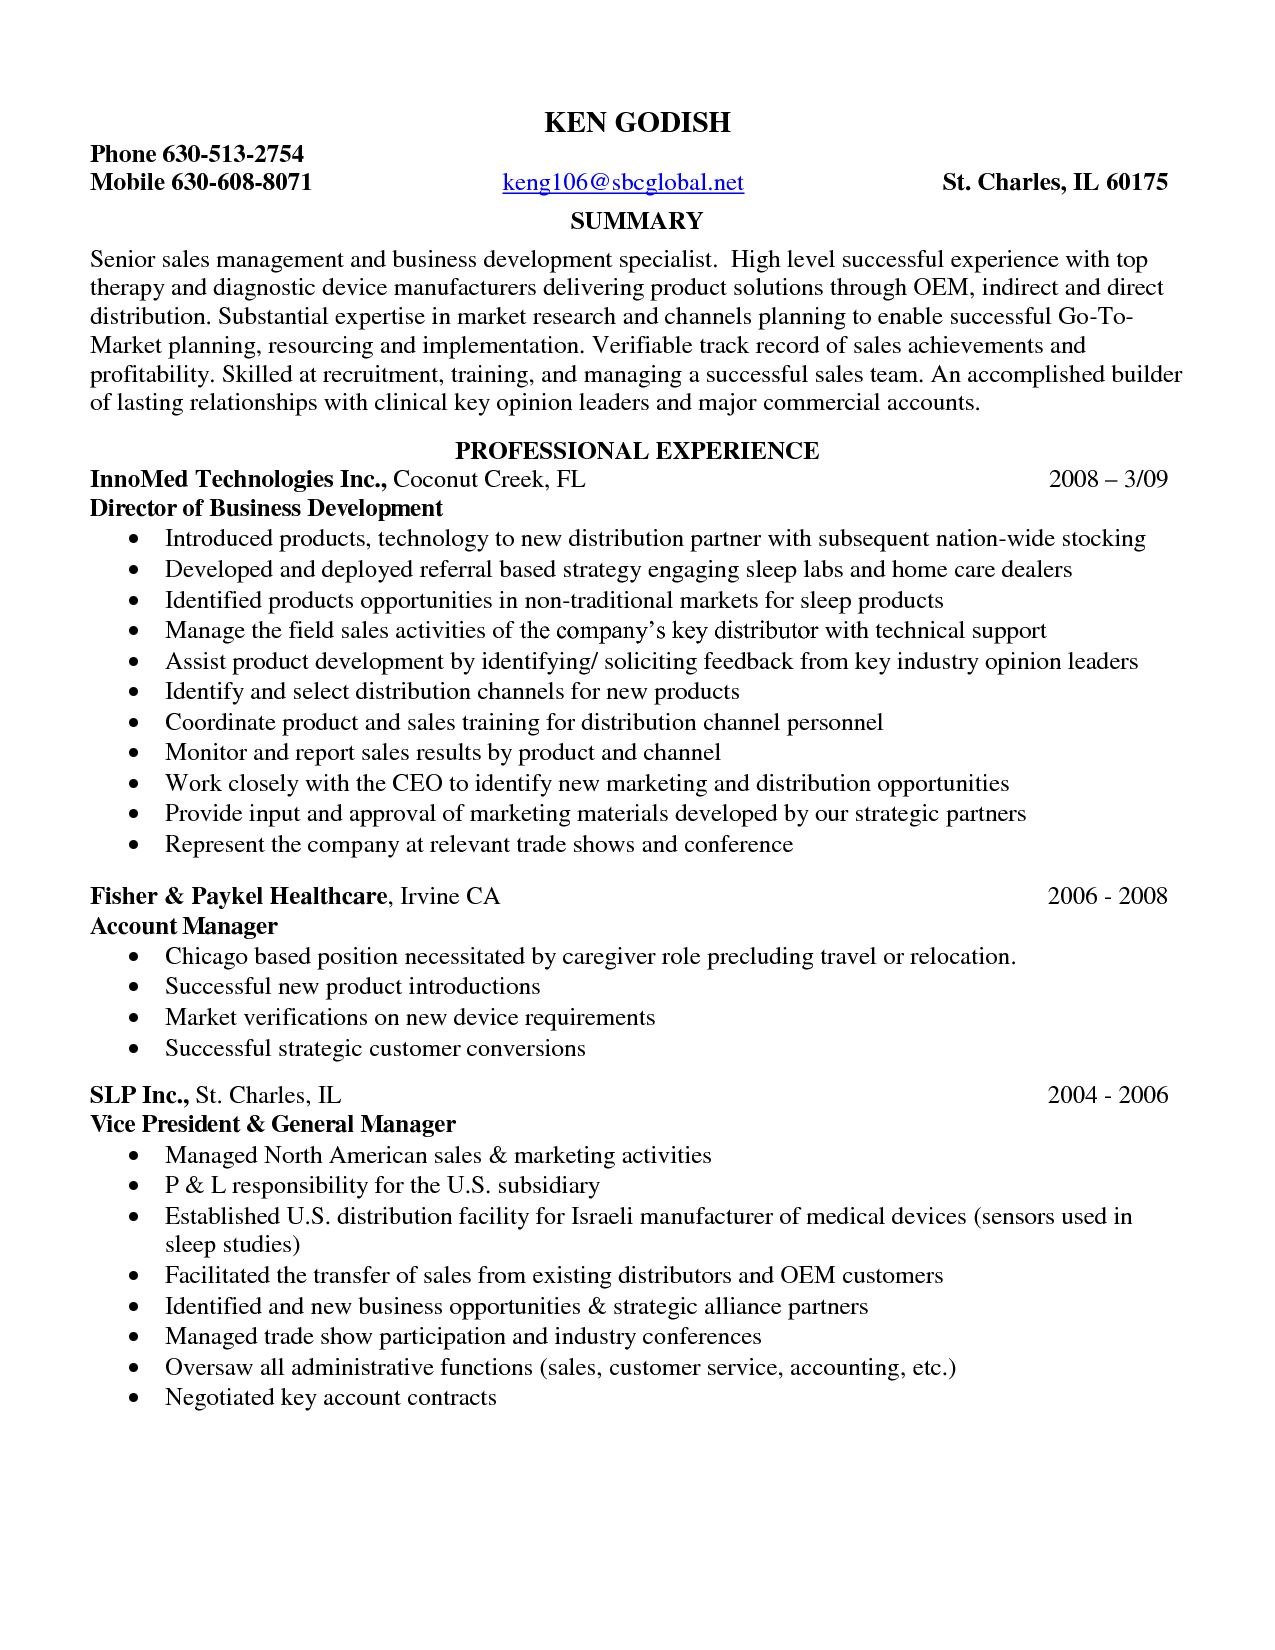 Sample Resume Entry Level Pharmaceutical Sales Sample Resume Entry Levelu2026  Sample Resume Objectives For Entry Level